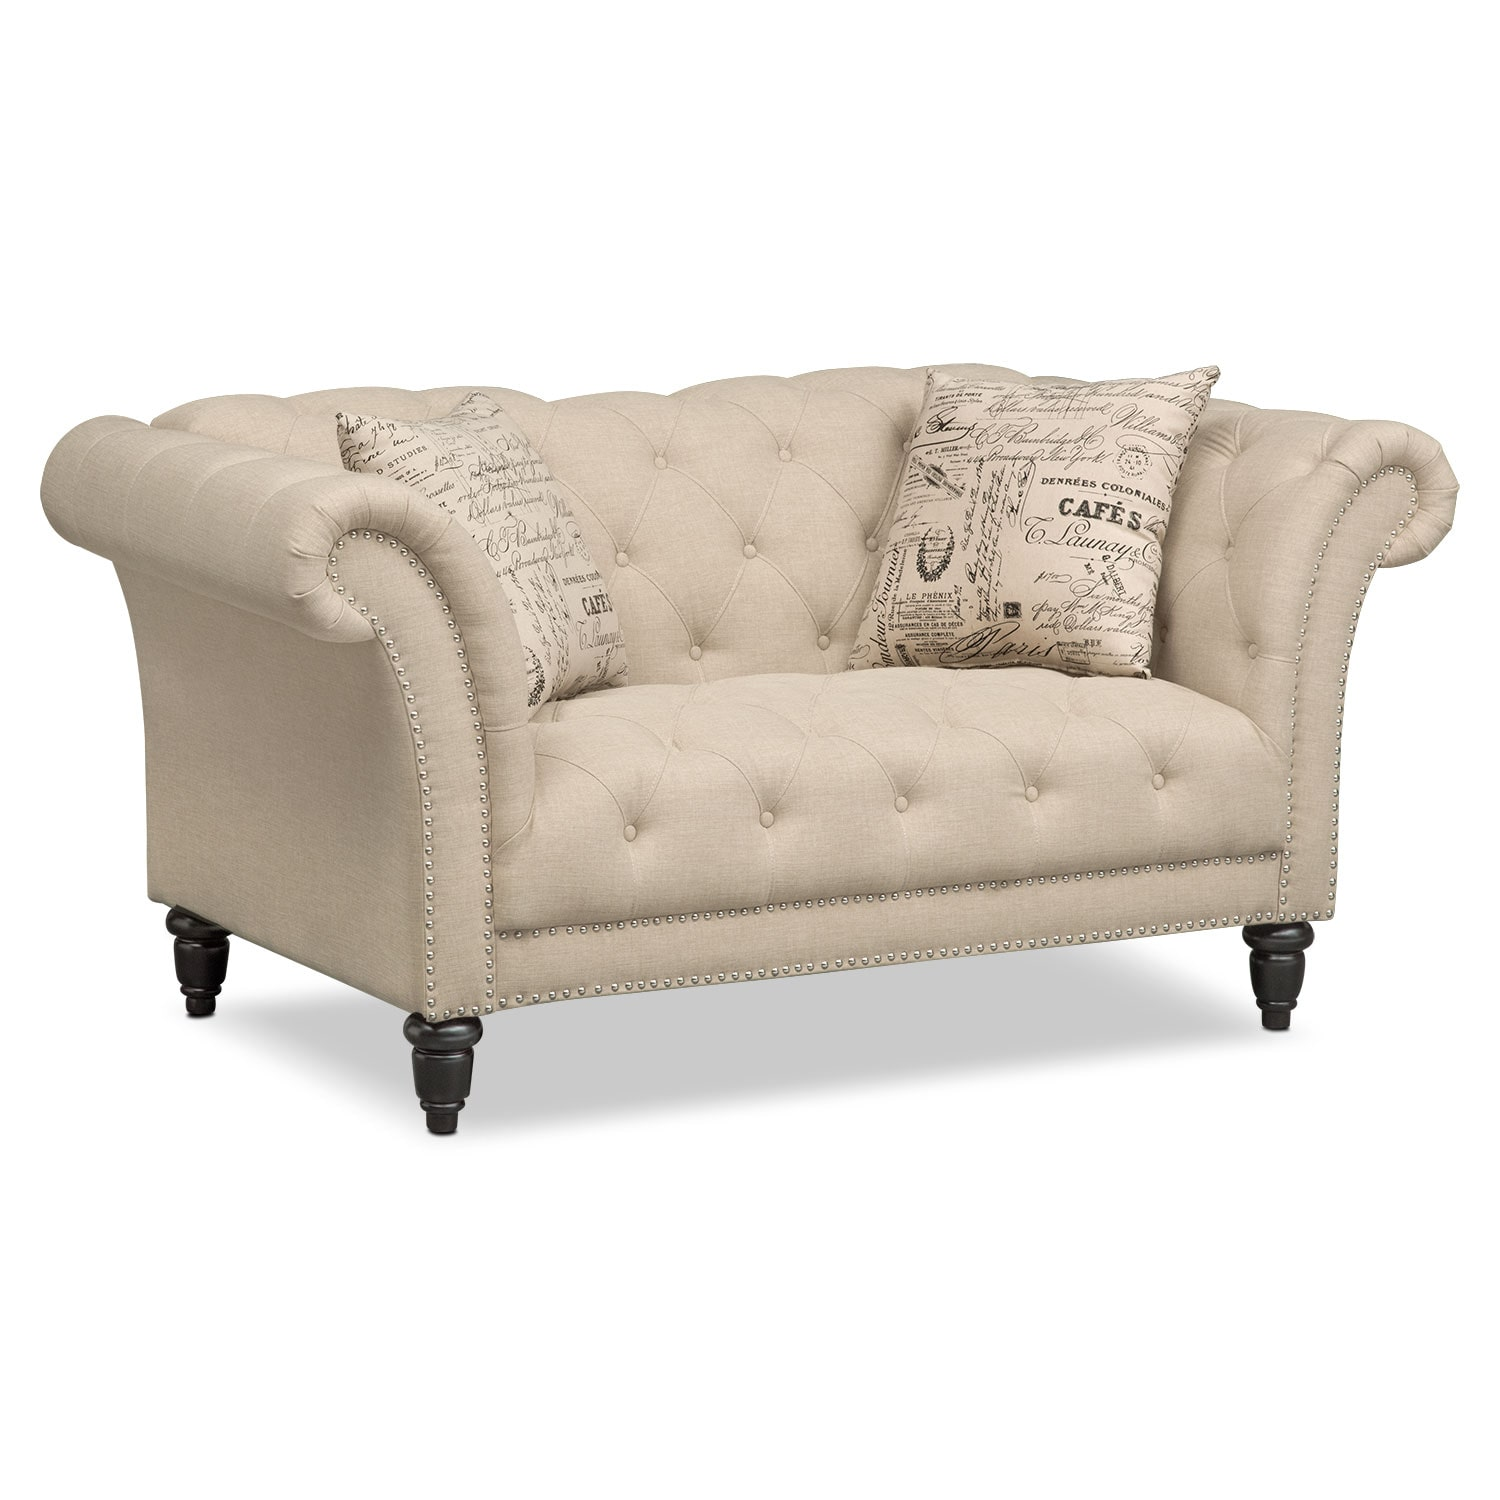 Marisol Loveseat Beige American Signature Furniture - Love seat and sofa